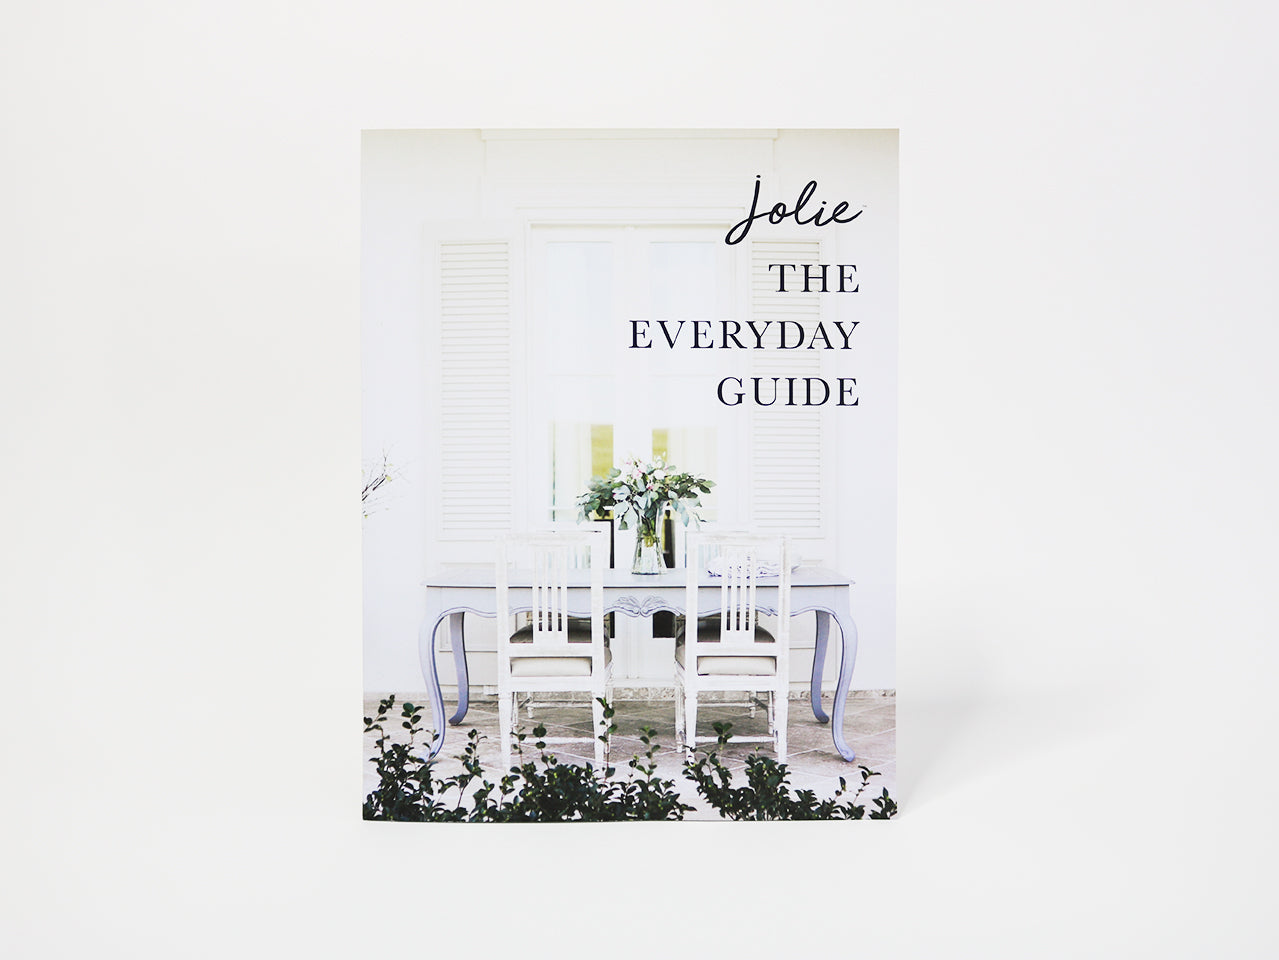 JOLIE The Everyday Guide